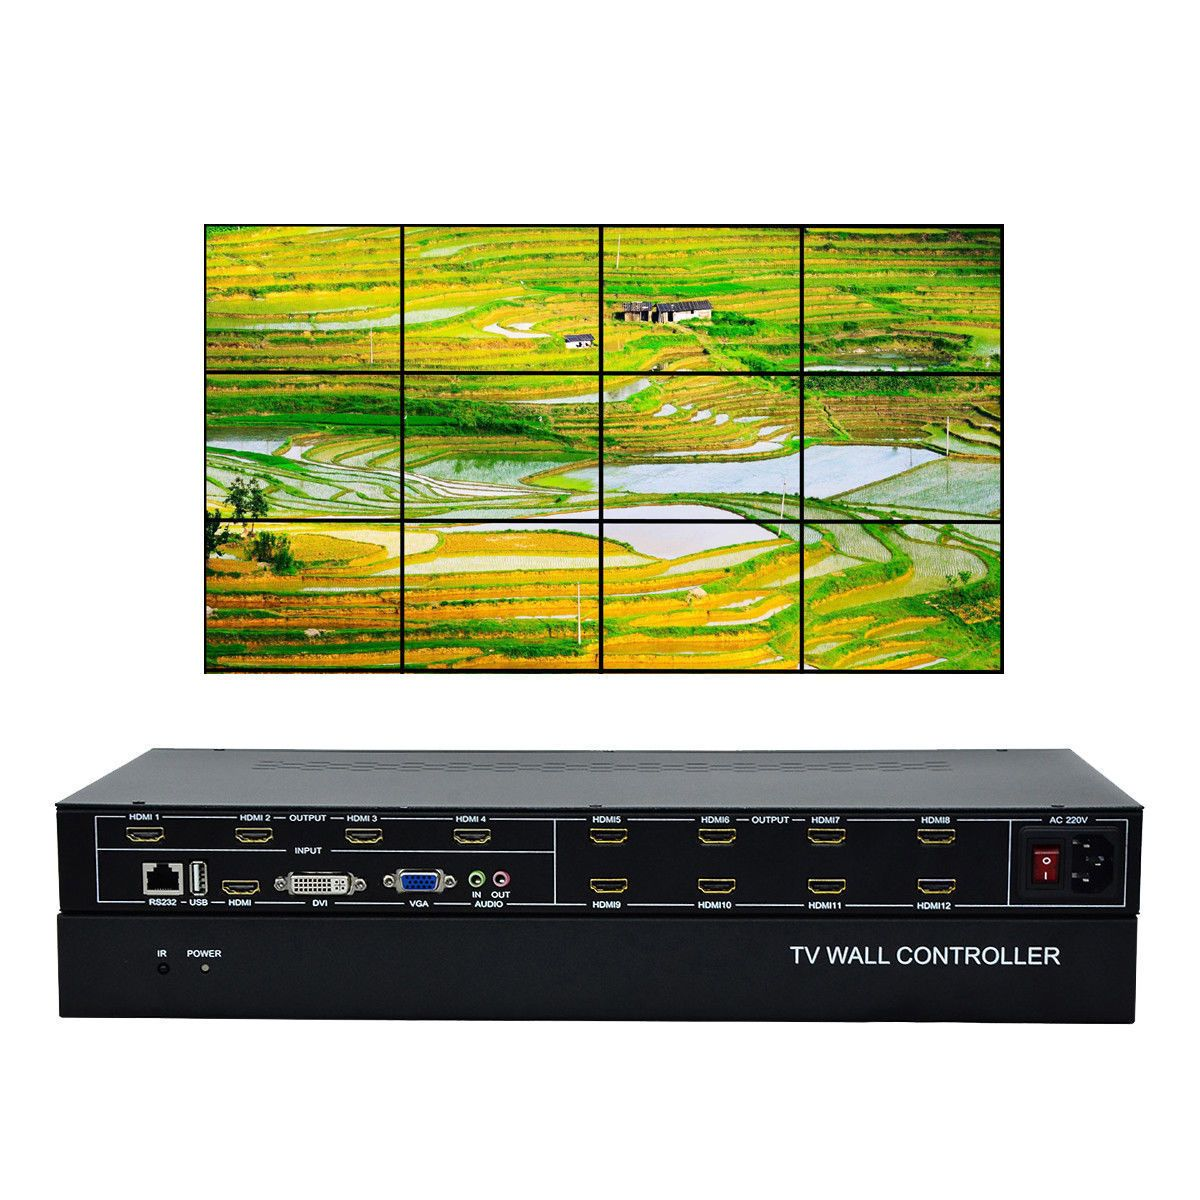 ESZYM 12 Channel TV Video Wall Controller 3x4 2x6 2x5 HDMI DVI VGA USB Video Processor